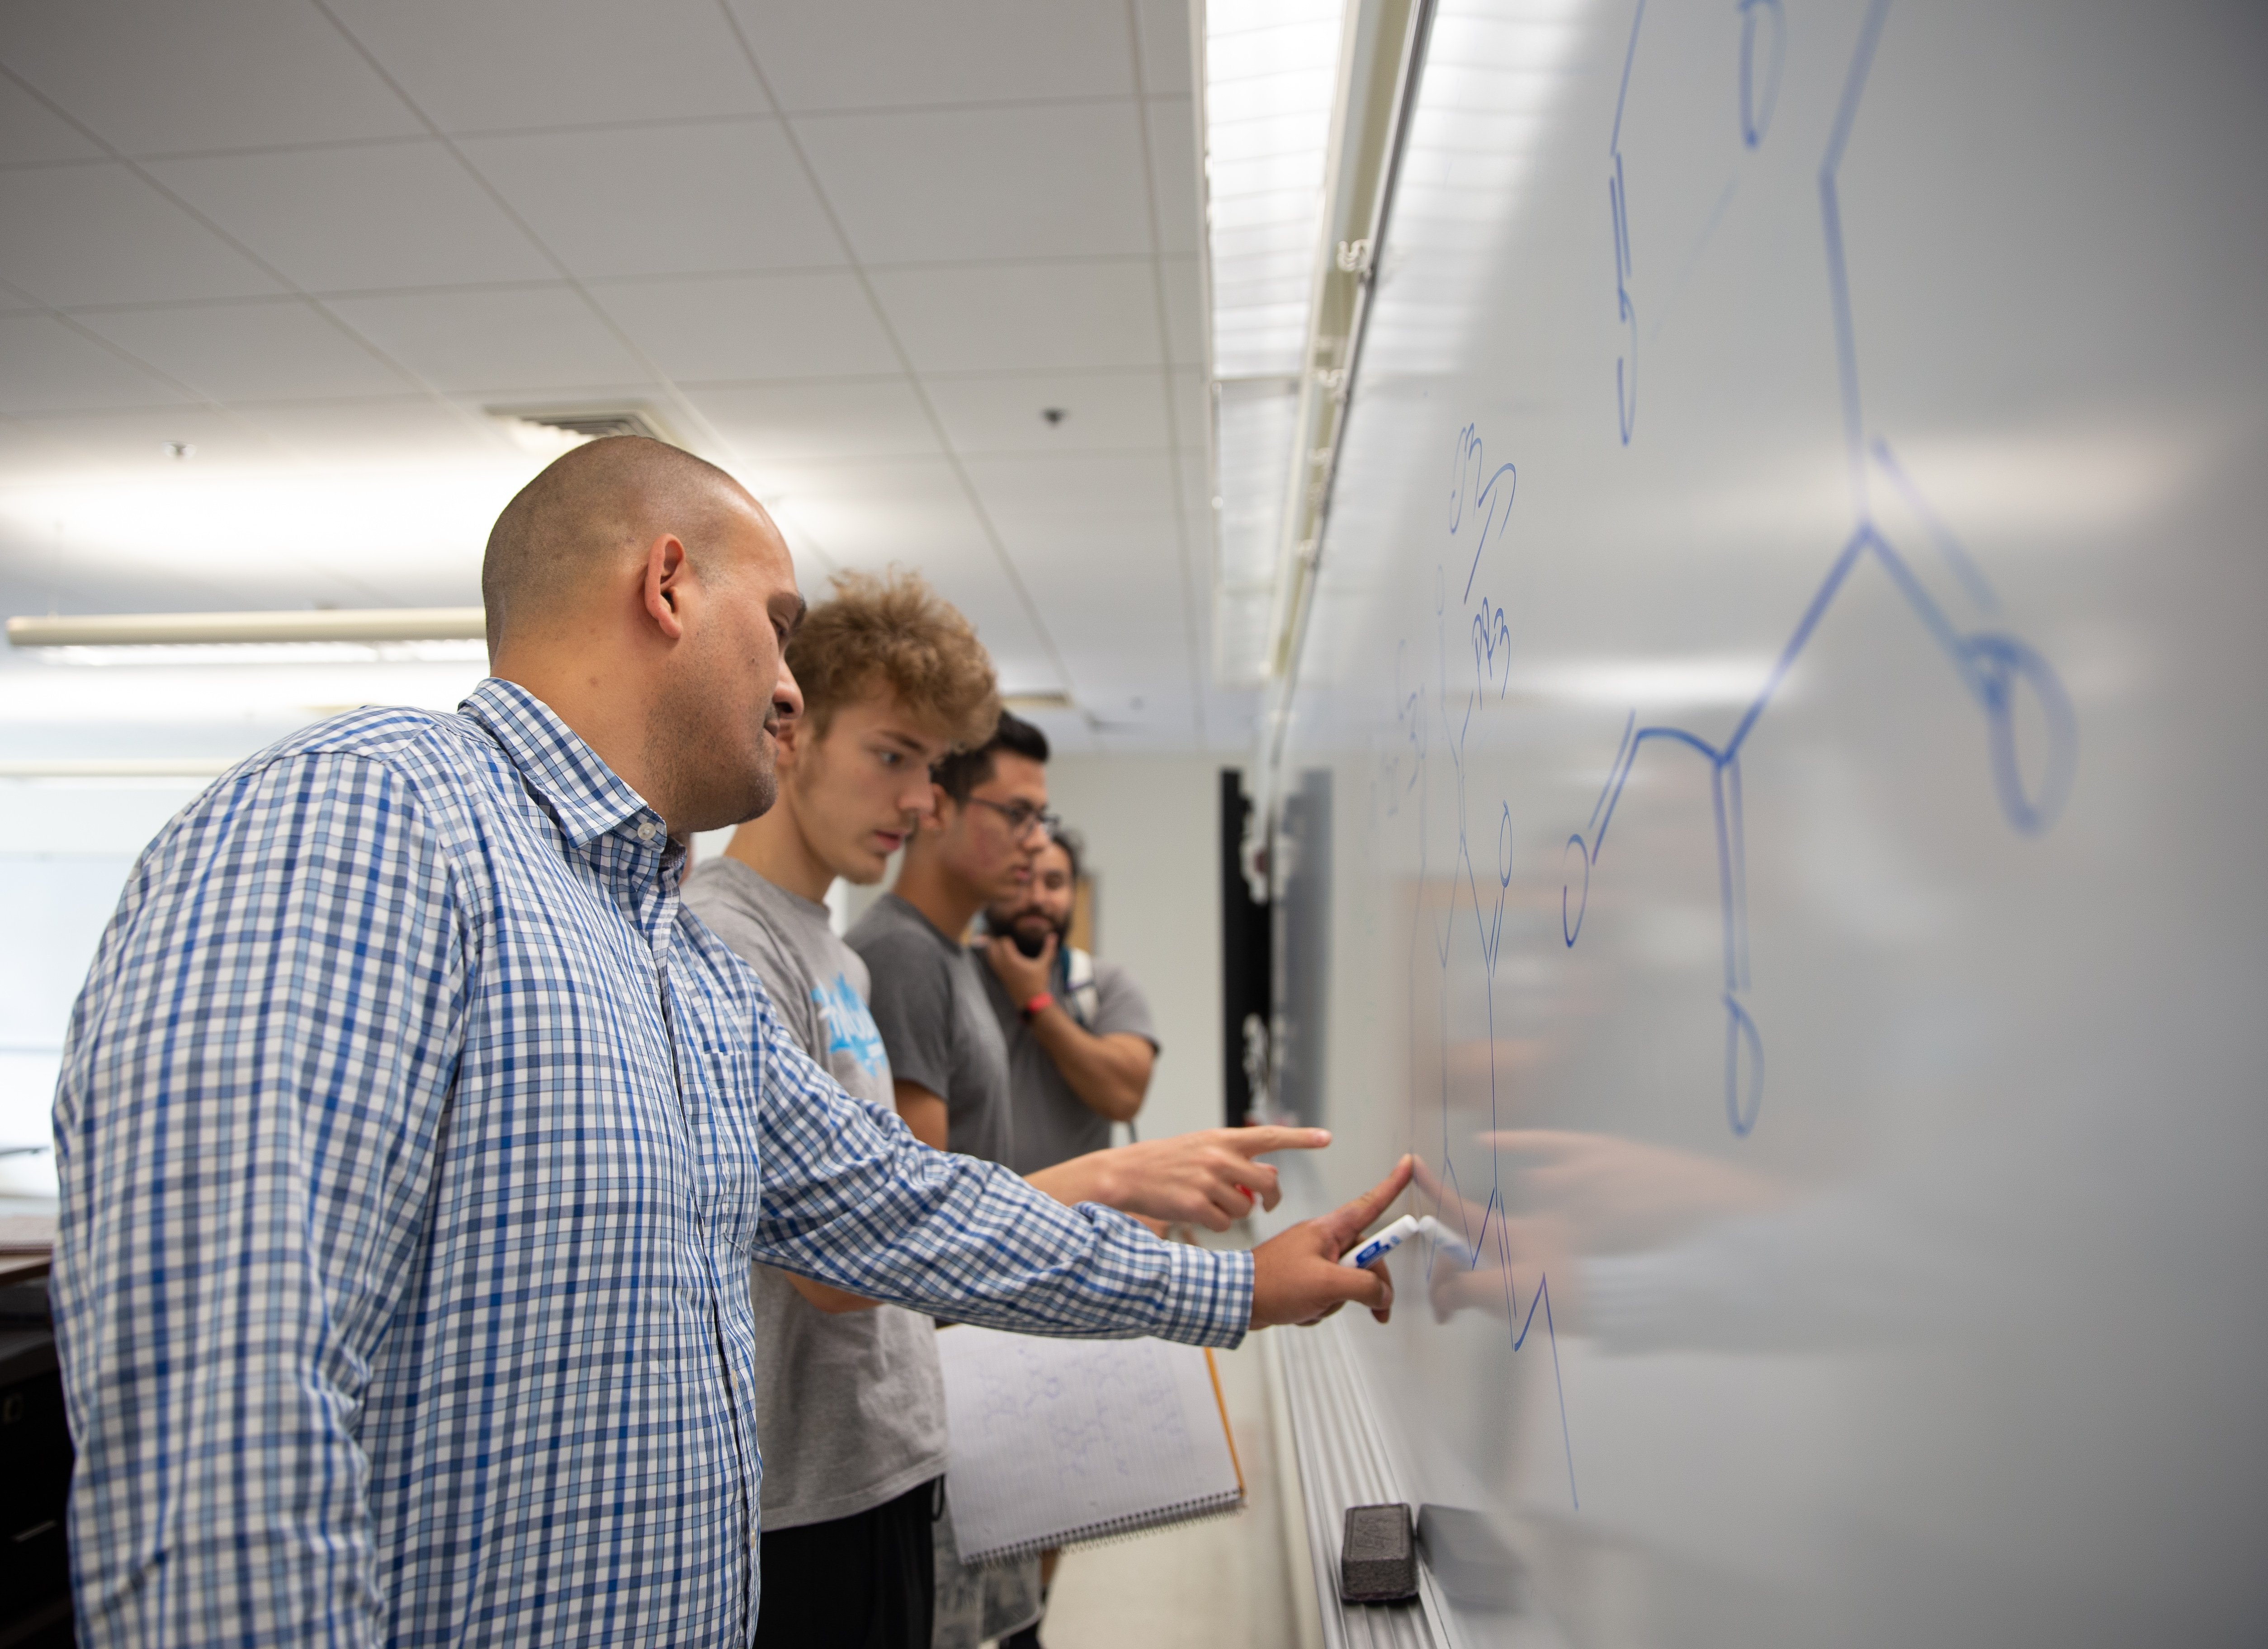 Dr. Moura-Letts interacting with students at a white board.